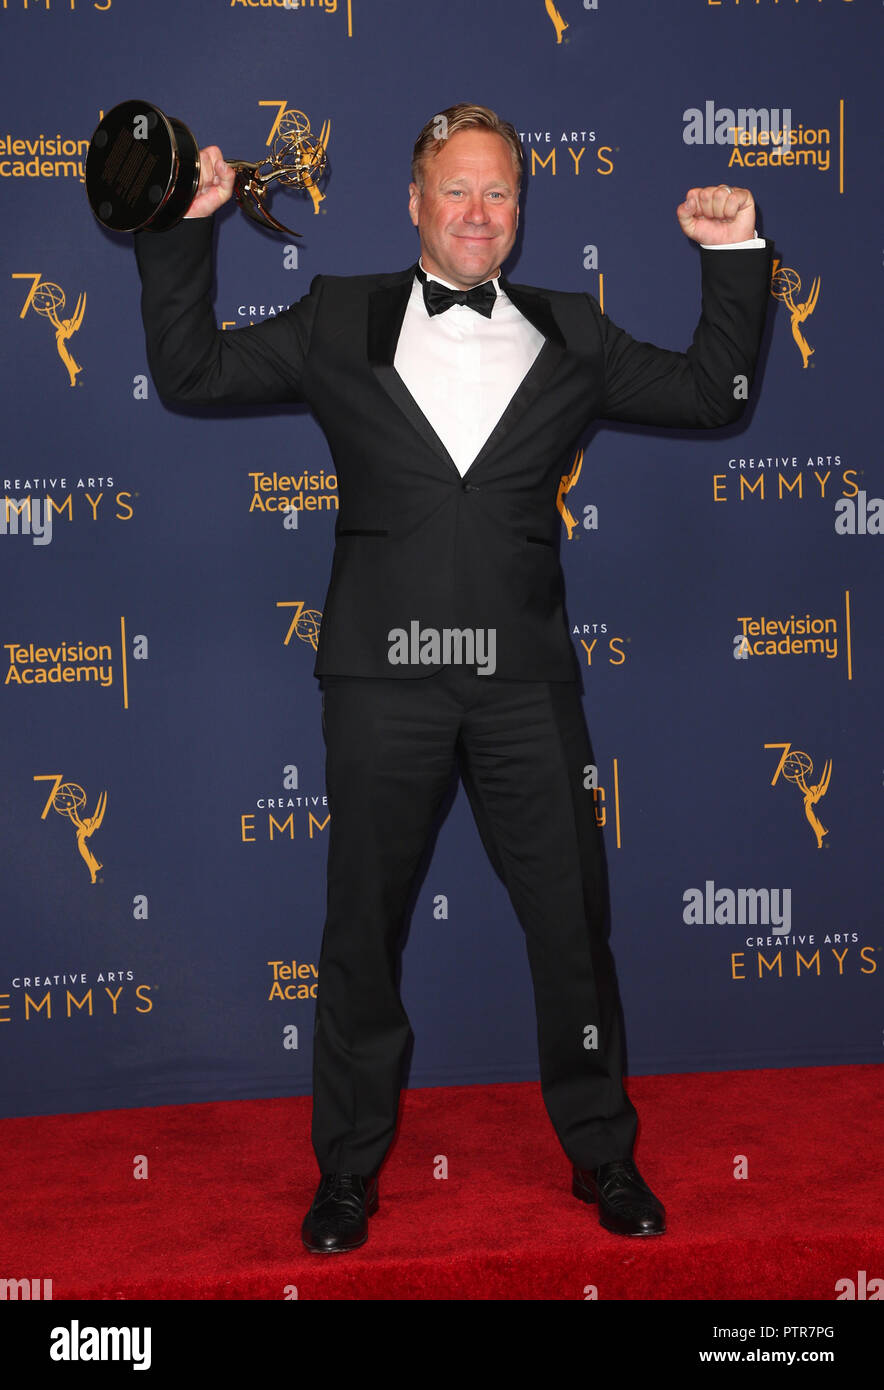 2018 Creative Arts Emmy Awards - Press Room Day 1  Featuring: Rowley Irlam Where: Los Angeles, California, United States When: 09 Sep 2018 Credit: FayesVision/WENN.com - Stock Image